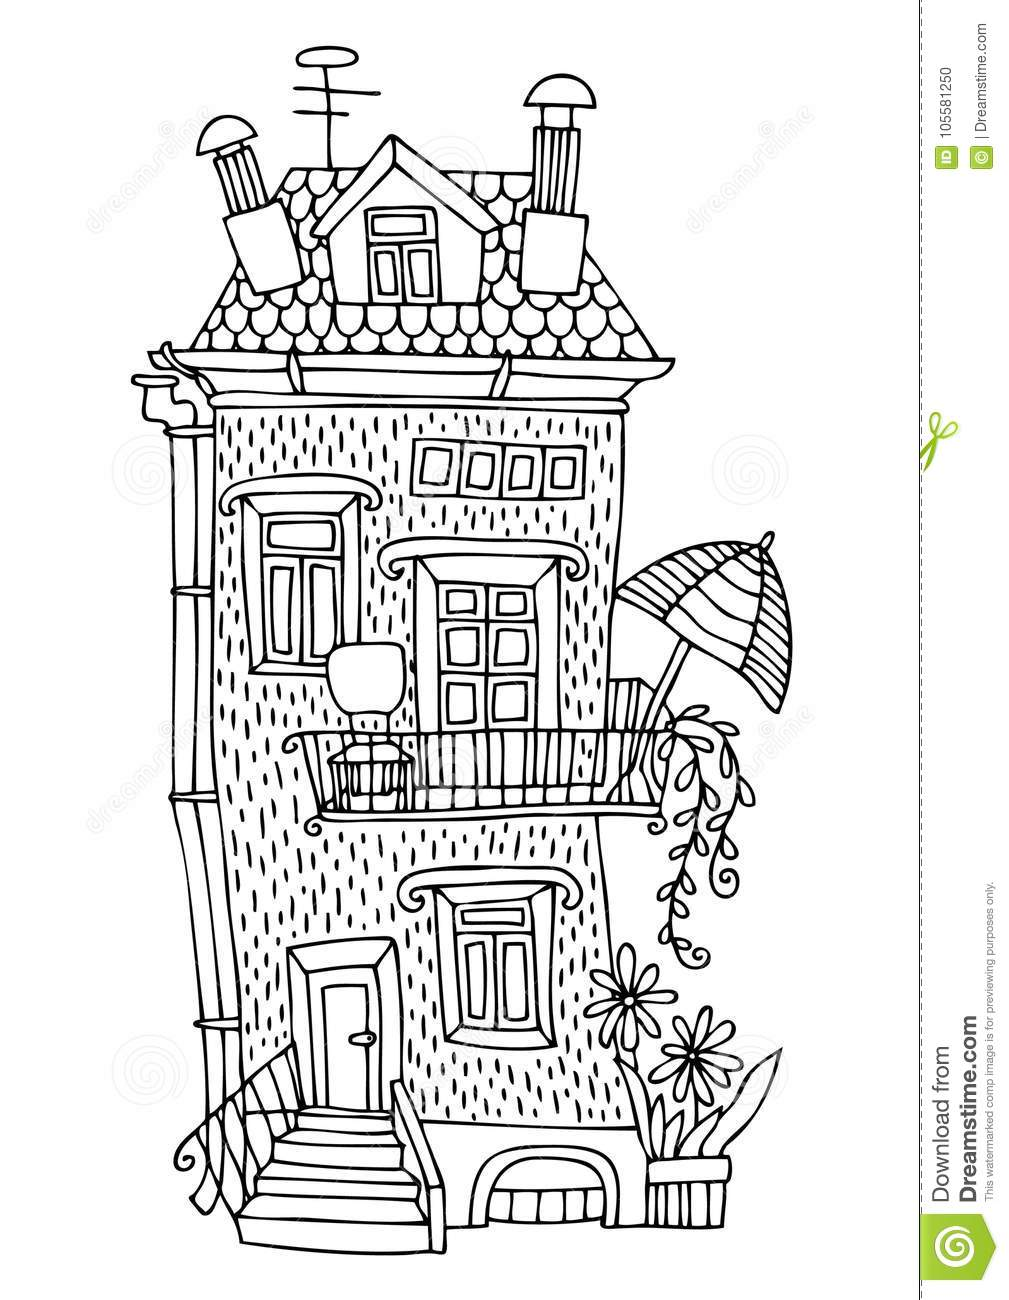 Fairytale House With A Terrace And Sunshade. Stock Vector ... on zentangle horse, zentangle sea, zentangle kindness, zentangle fancy letters, zentangle fire, zentangle birds, zentangle books, zentangle faces, zentangle leaves, zentangle fish, zentangle dragon, fairy pencil drawings of tree houses, zentangle easter, zentangle tree, valentine fairy houses, vintage fairy houses, zentangle fairies, zentangle dragonfly, zentangle art, steampunk fairy houses,